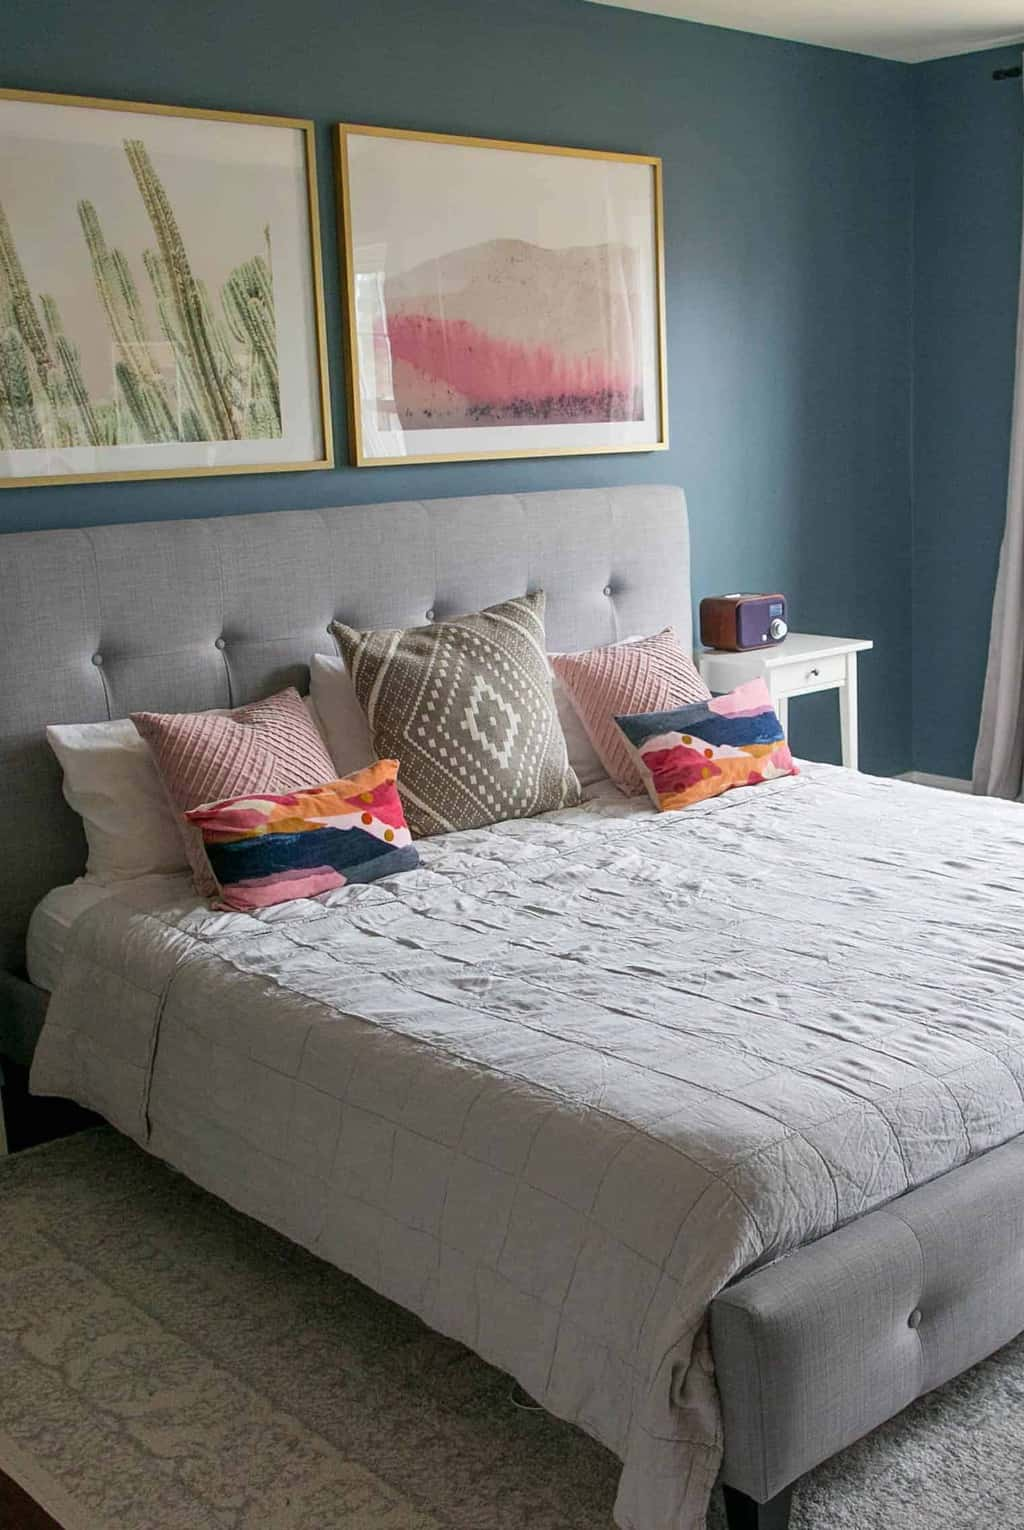 How to Design a Sleep-Friendly Bedroom